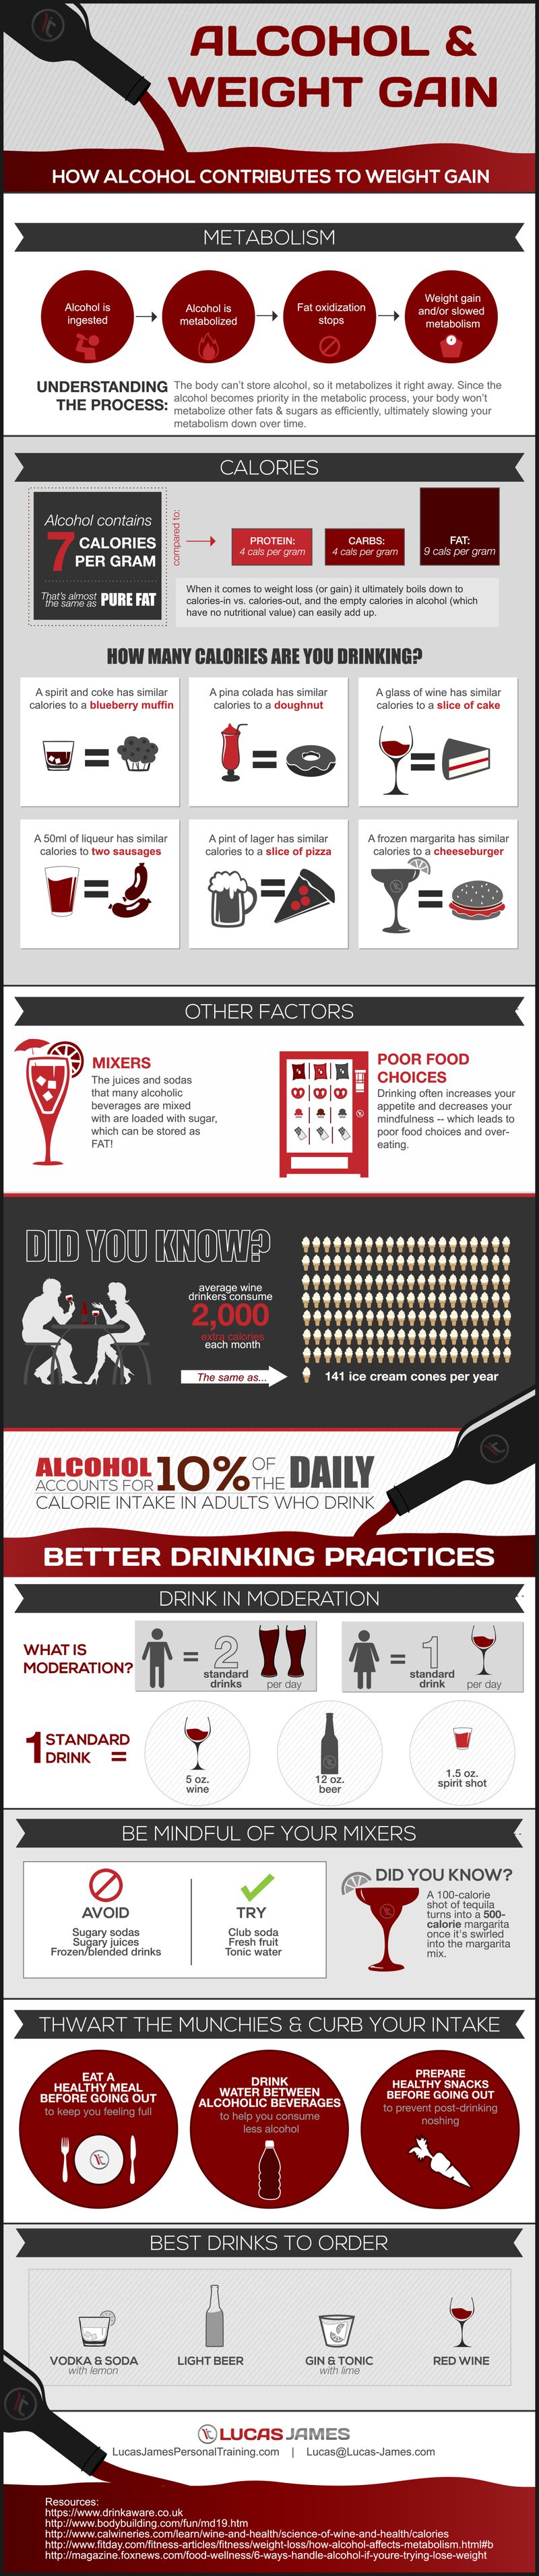 This infographic shows how alcohol contributes to weight gain nvjuhfo Choice Image